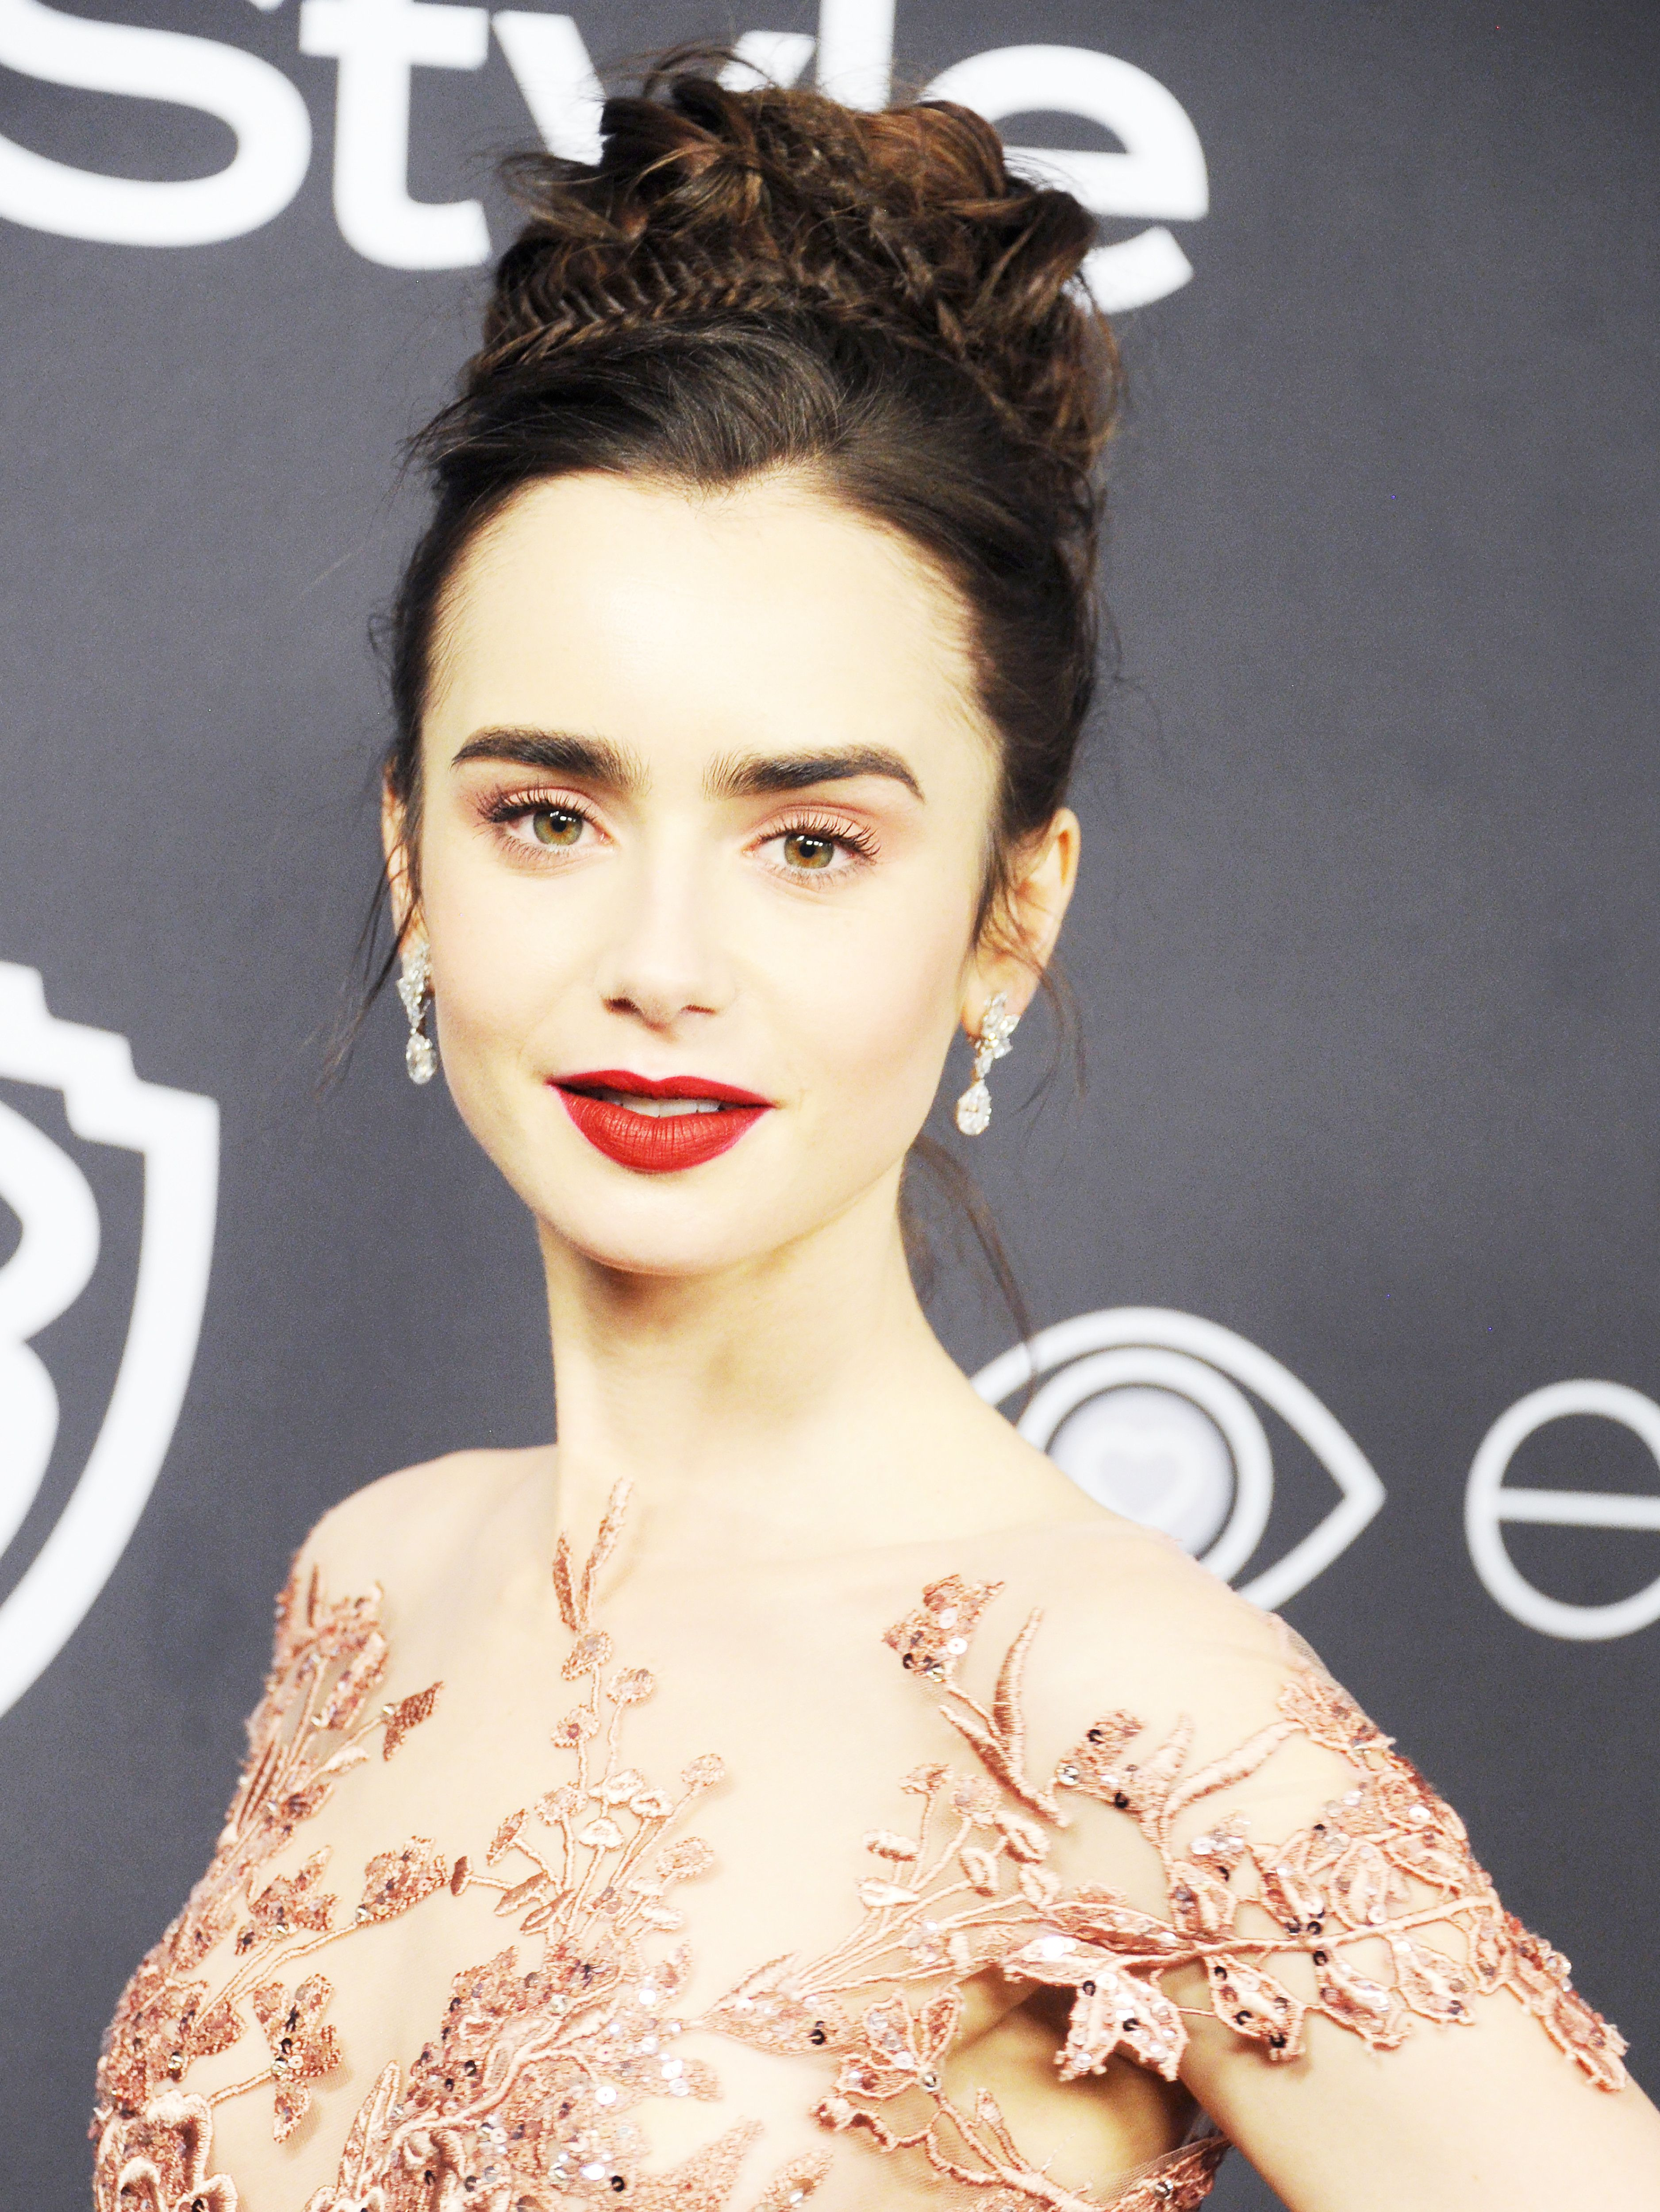 Lily Collins Won the Golden Globes Red Carpet—Here's How